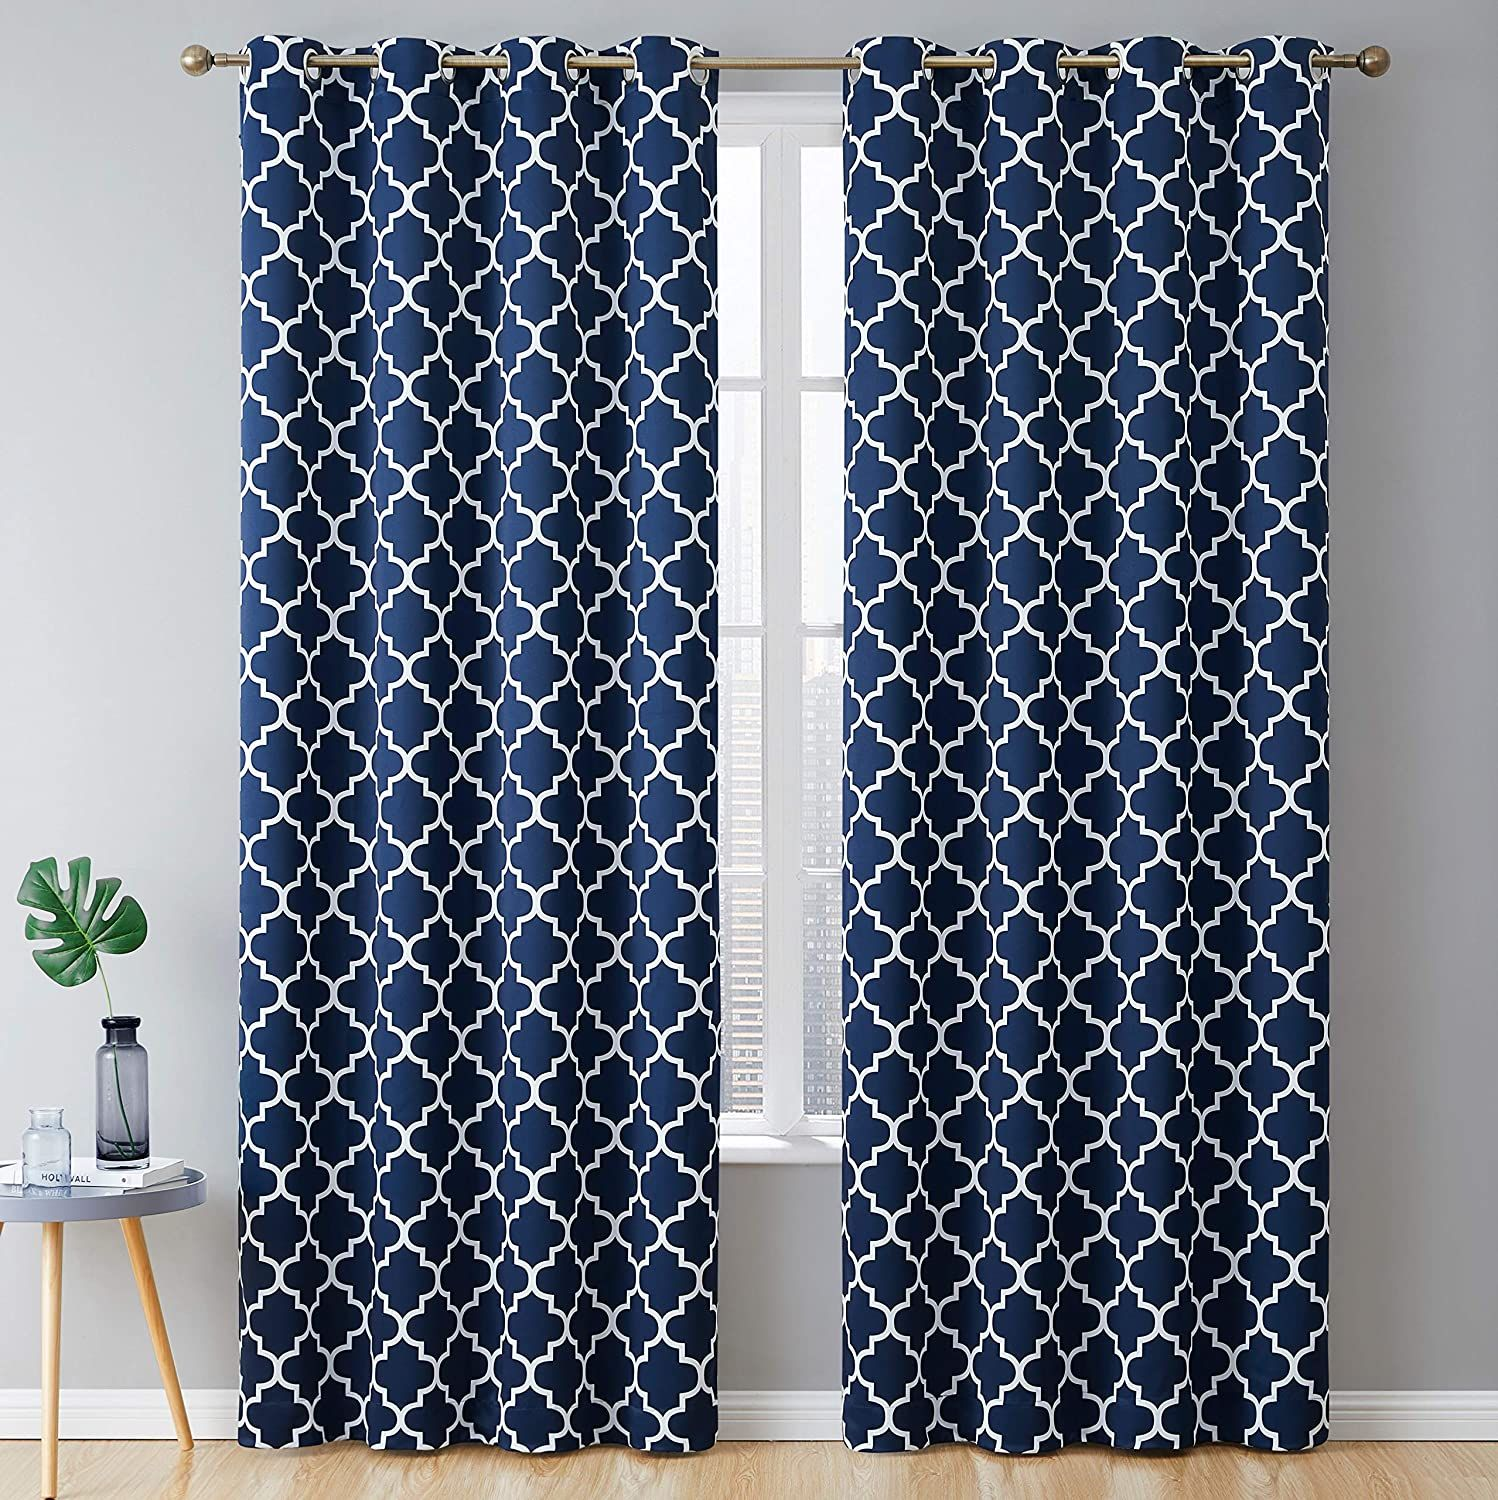 15 Best Blue And White Curtains Thetarnishedjewelblog Blue And White Curtains Grommet Curtains Panel Curtains Blue and white curtain panels